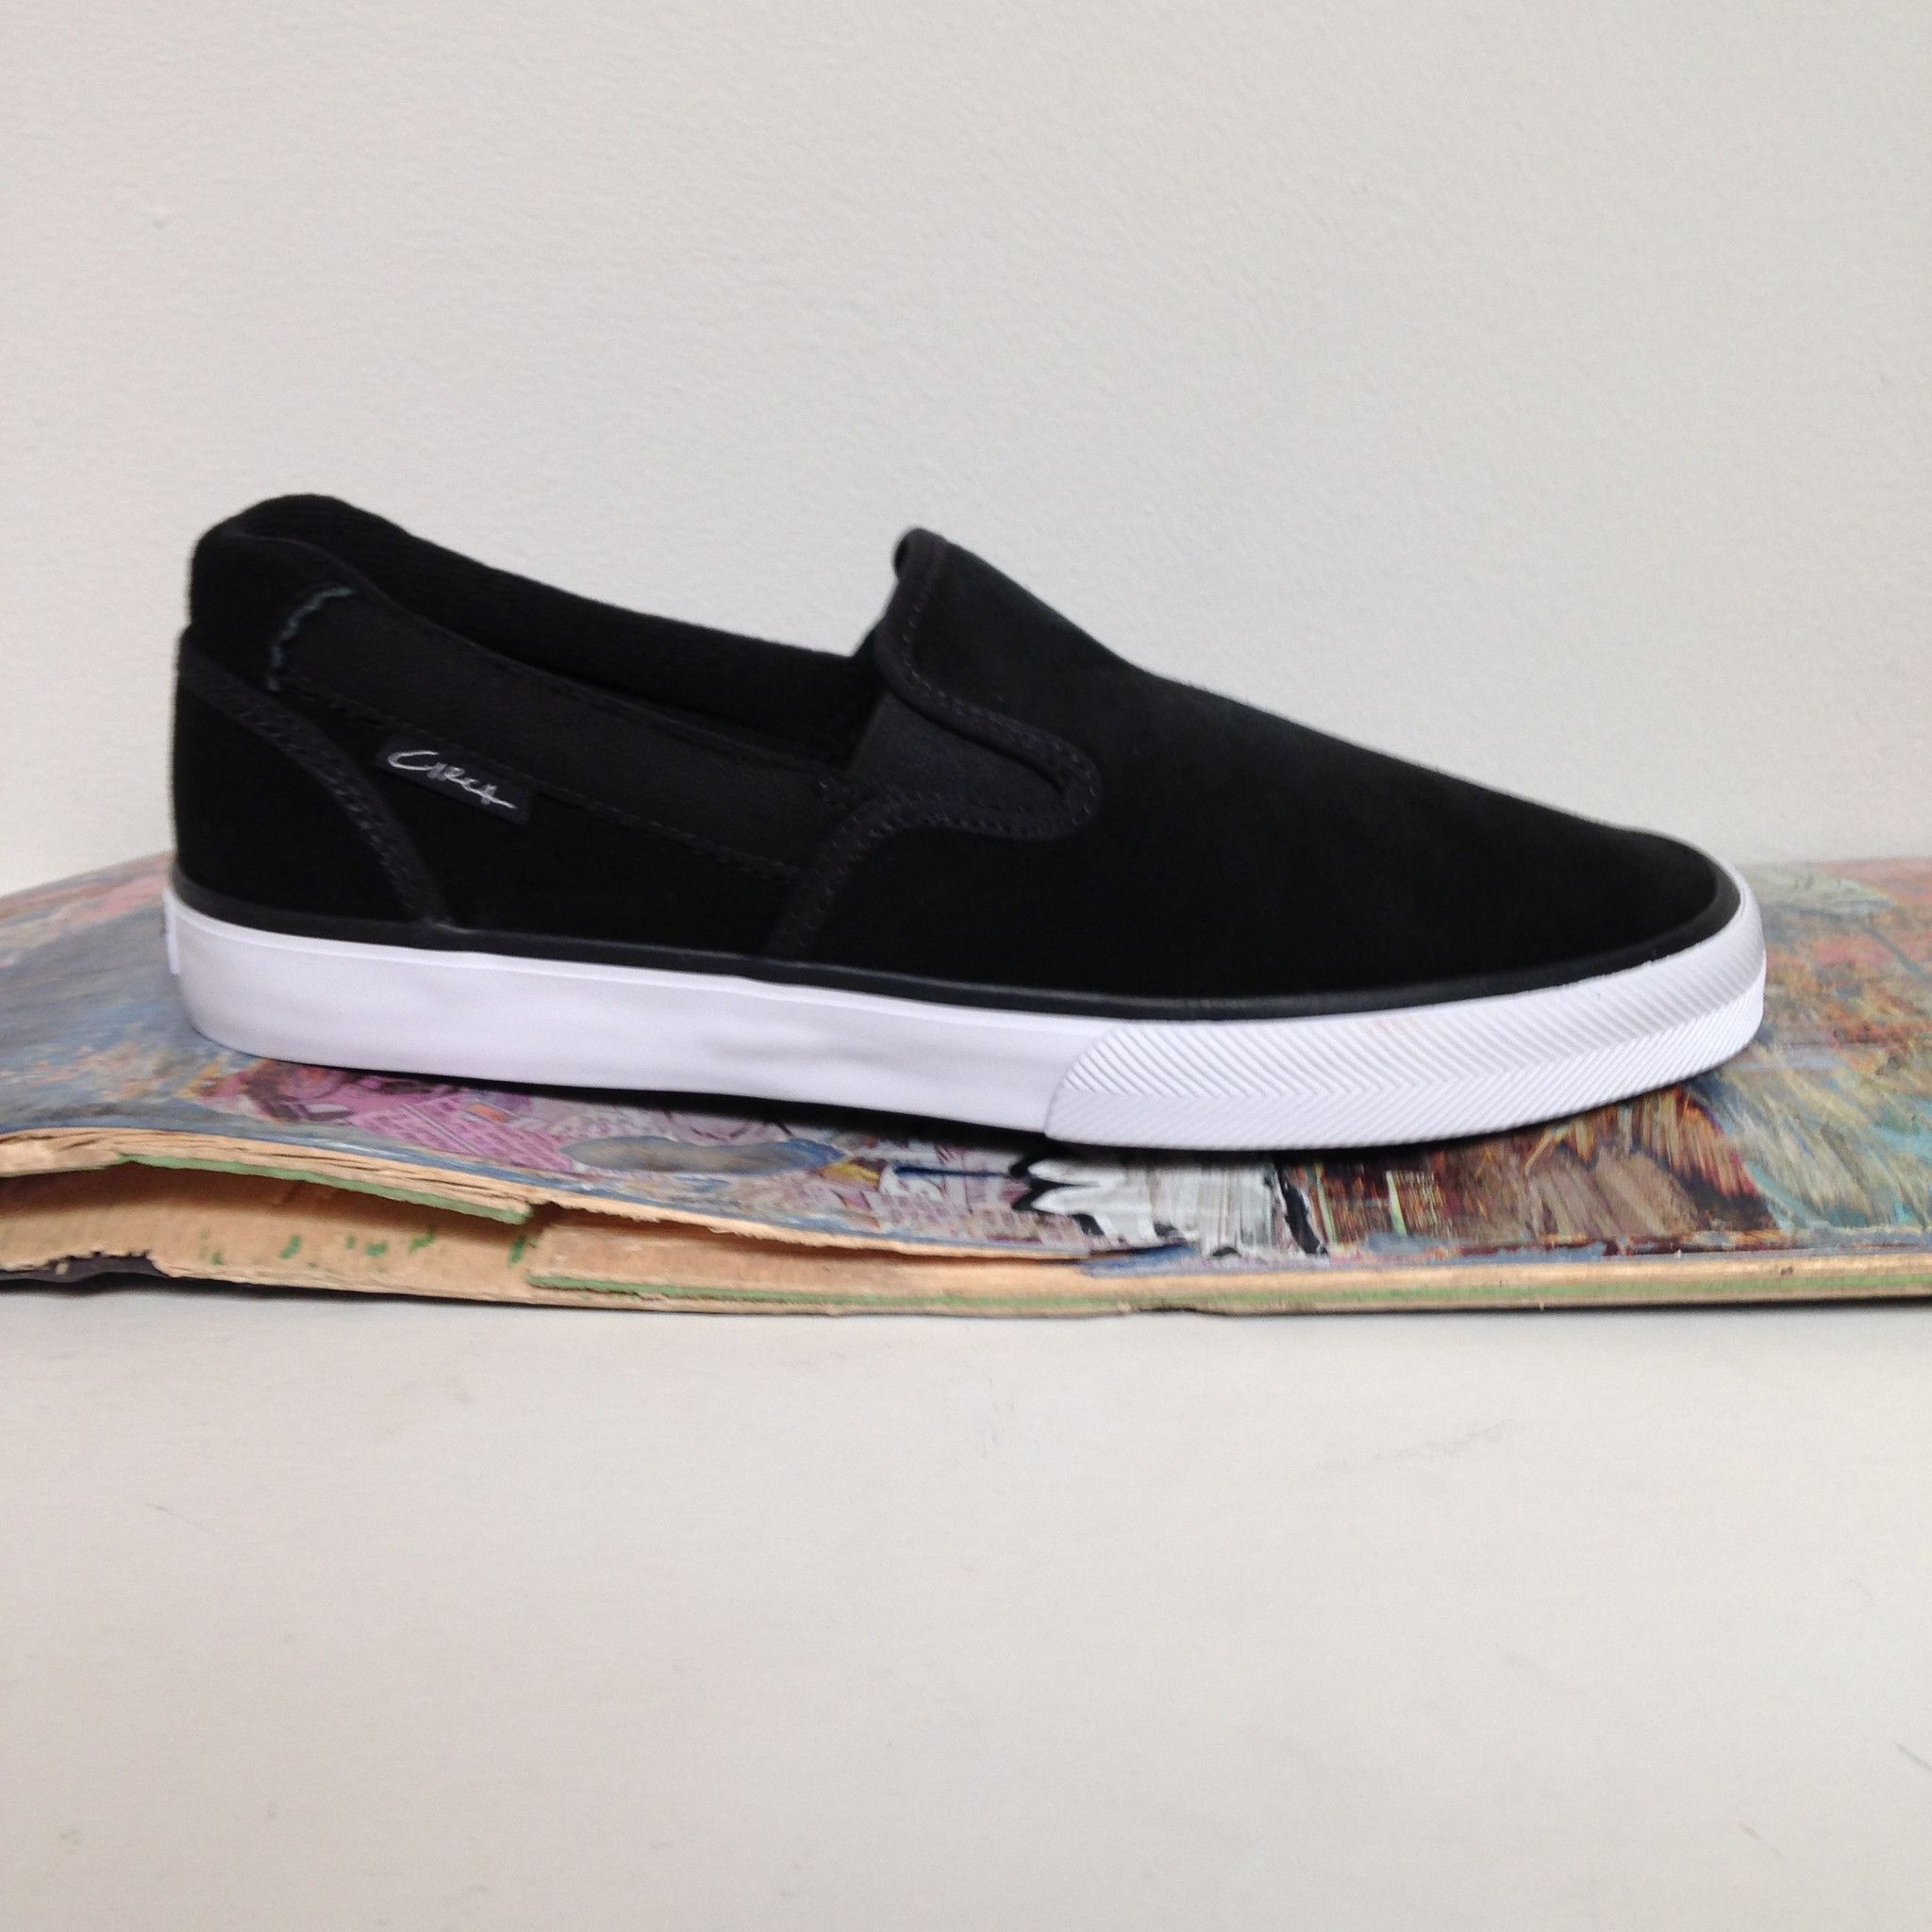 ce6f288f C1RCA Corpus slip-on Suede Black/ White Skate Shoe | skate shops and ...